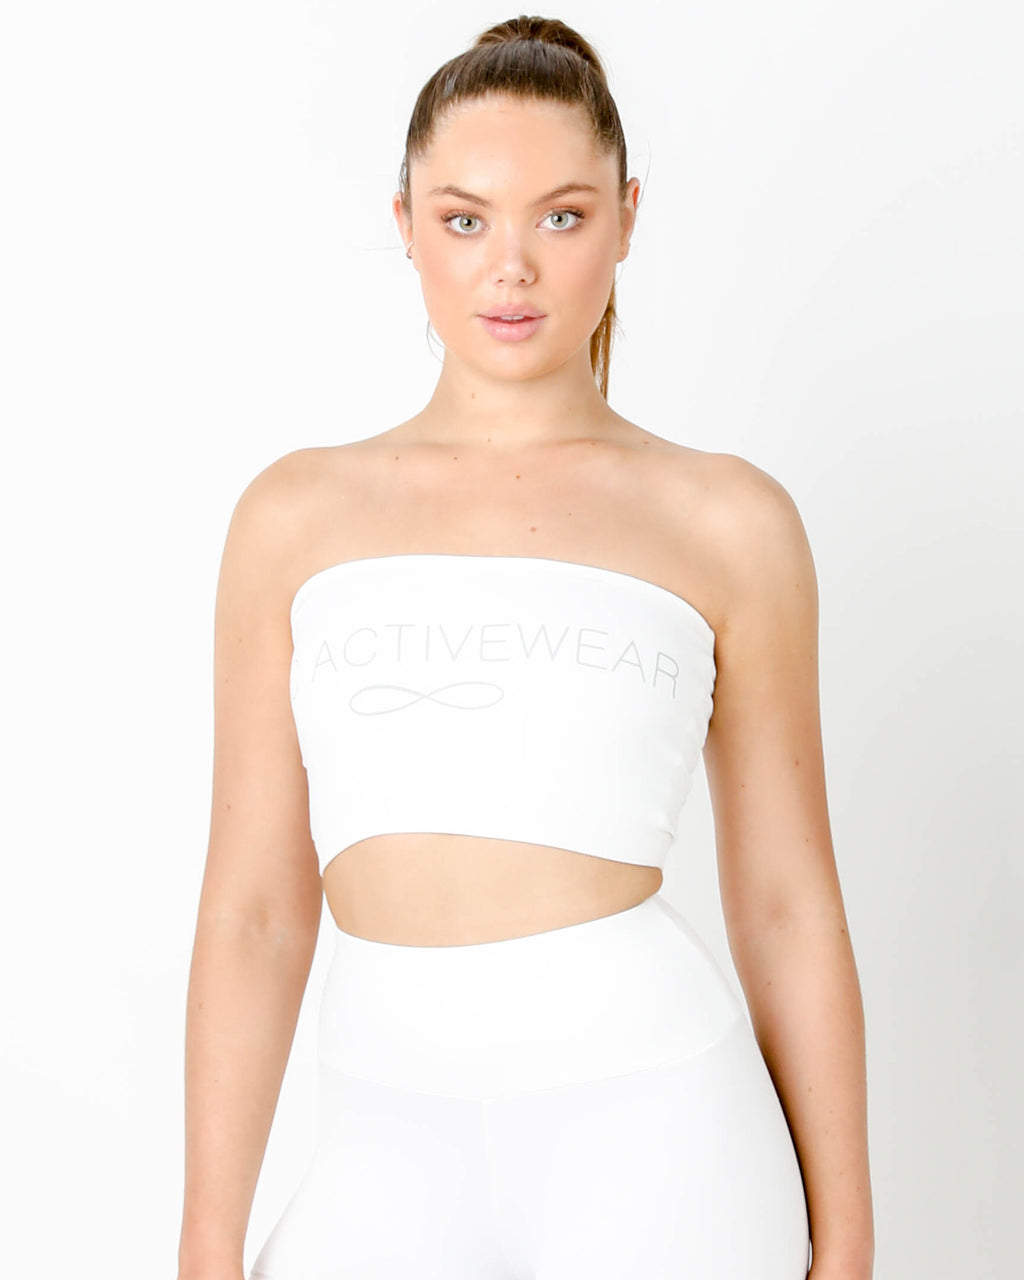 White Tube Top - MC Activewear and Waist Training